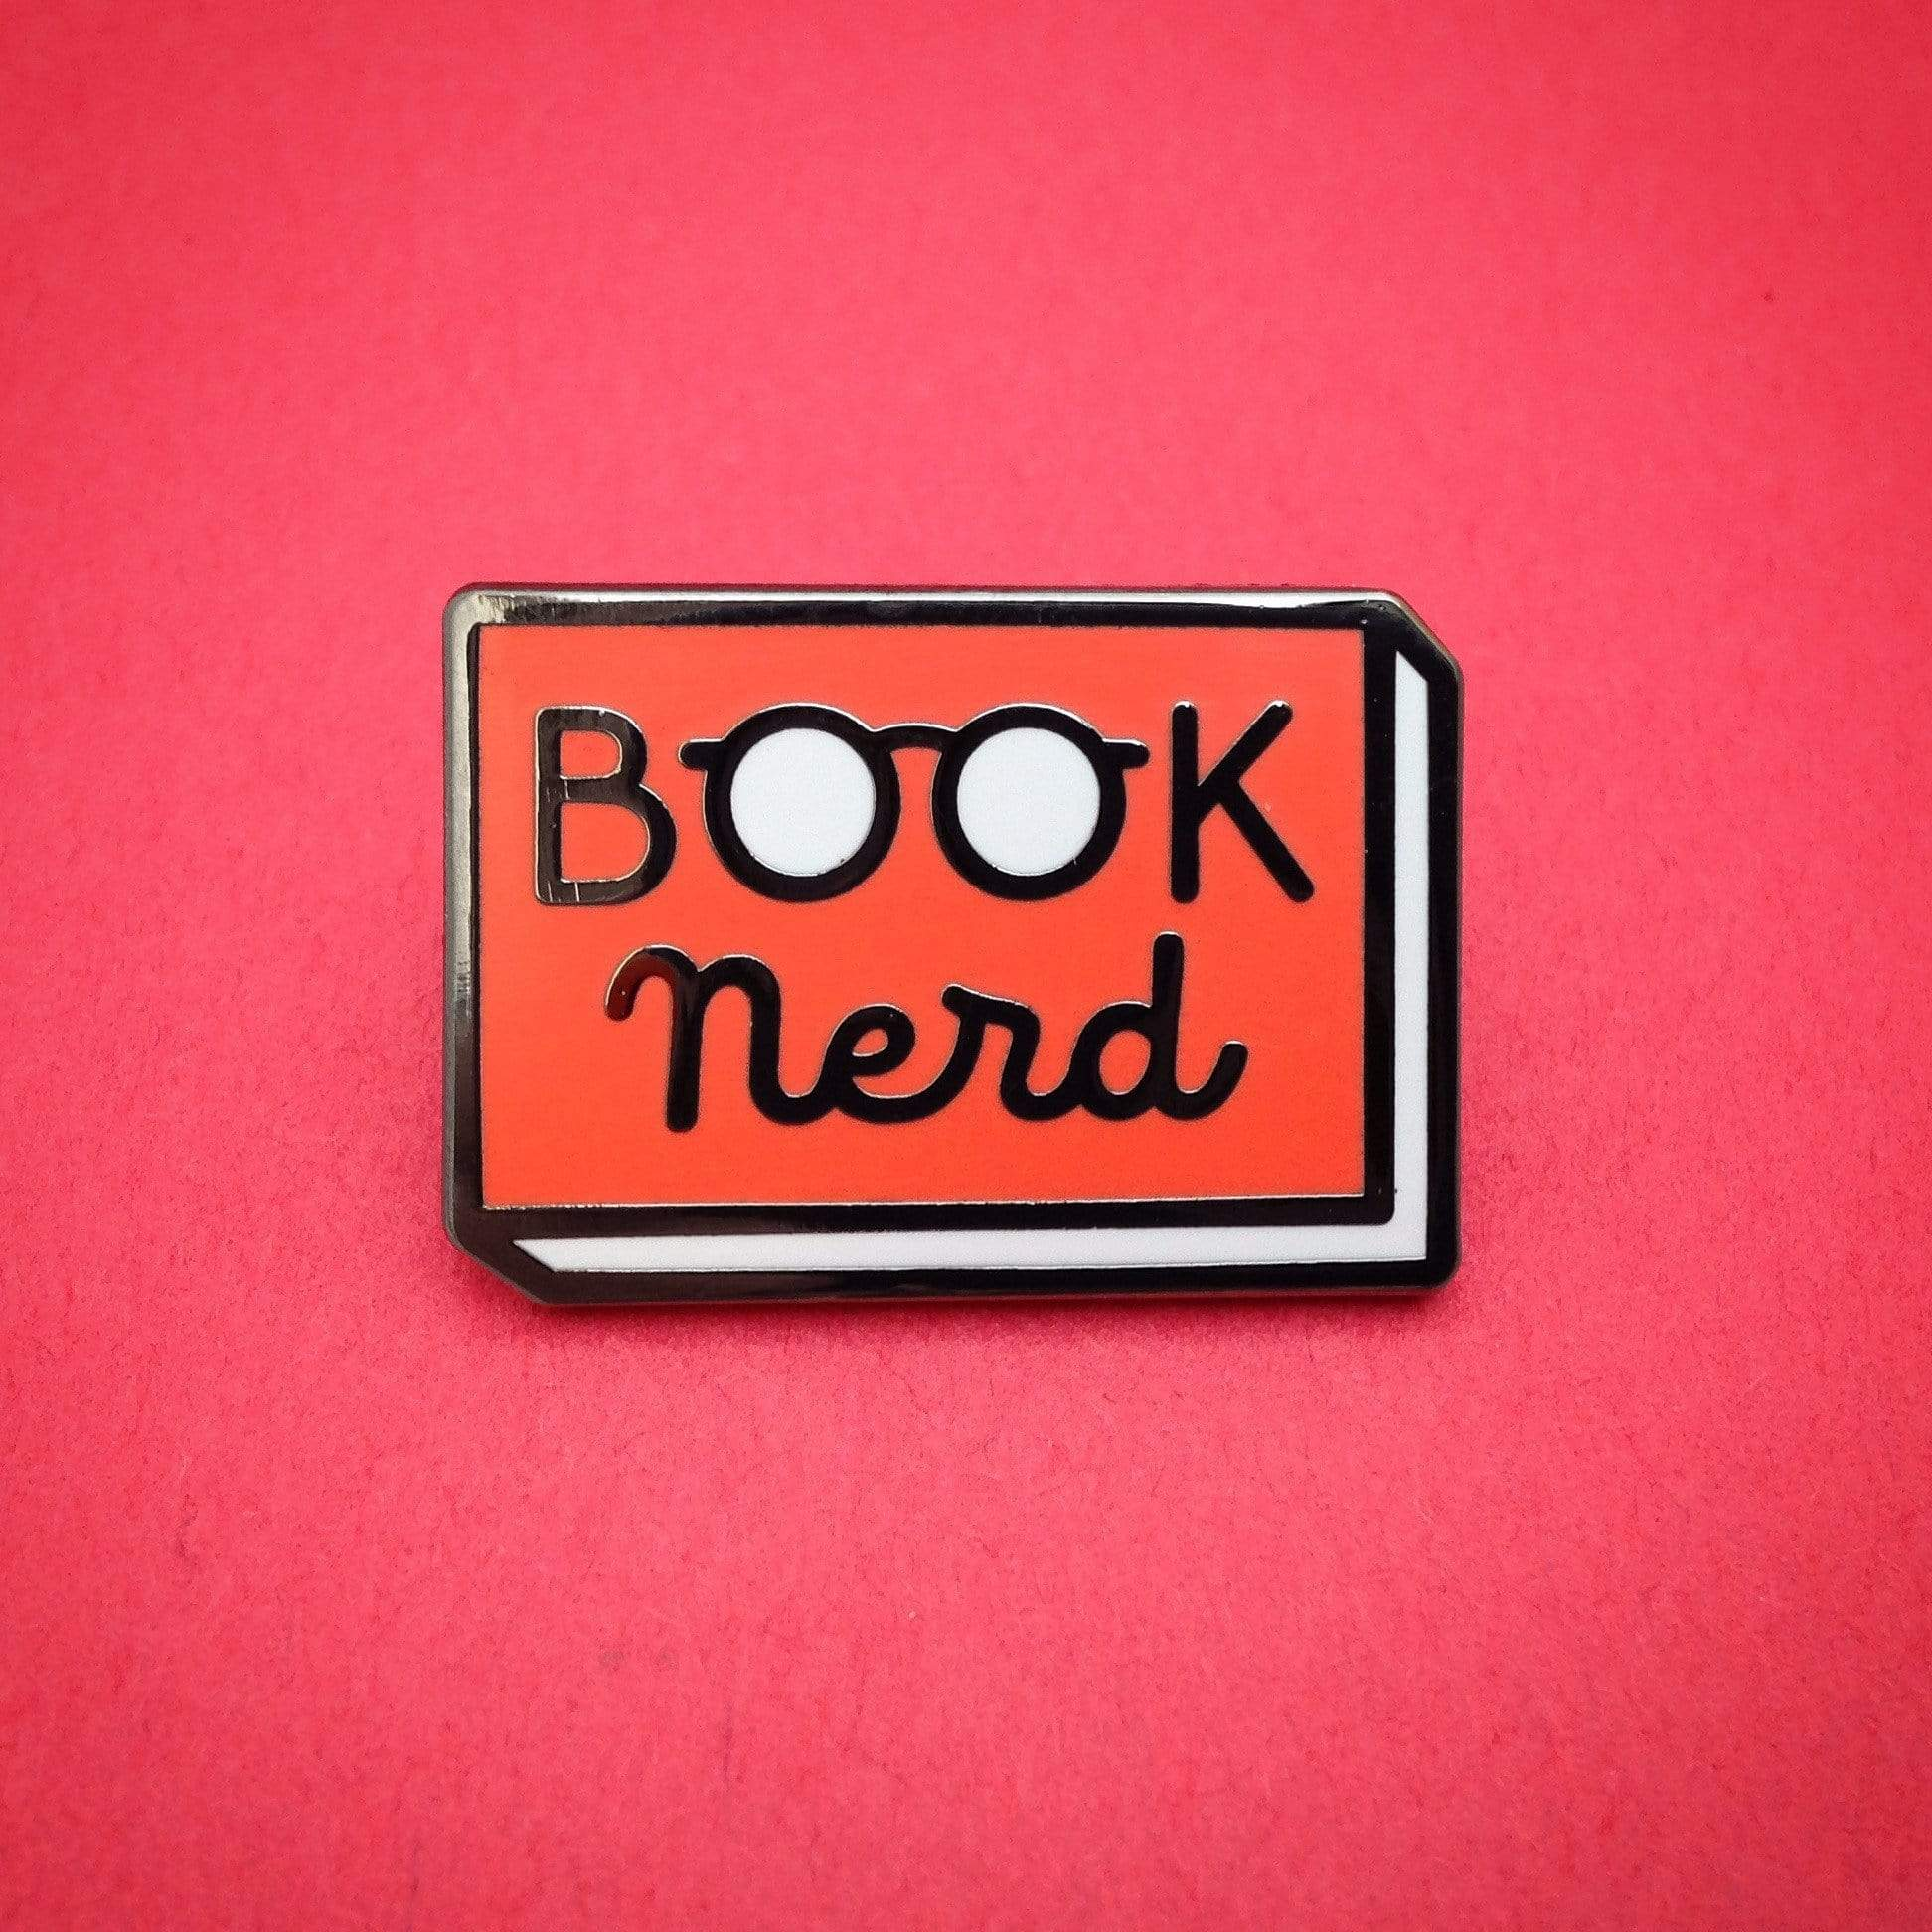 Blue Book Nerd Enamel Pin BookGeek